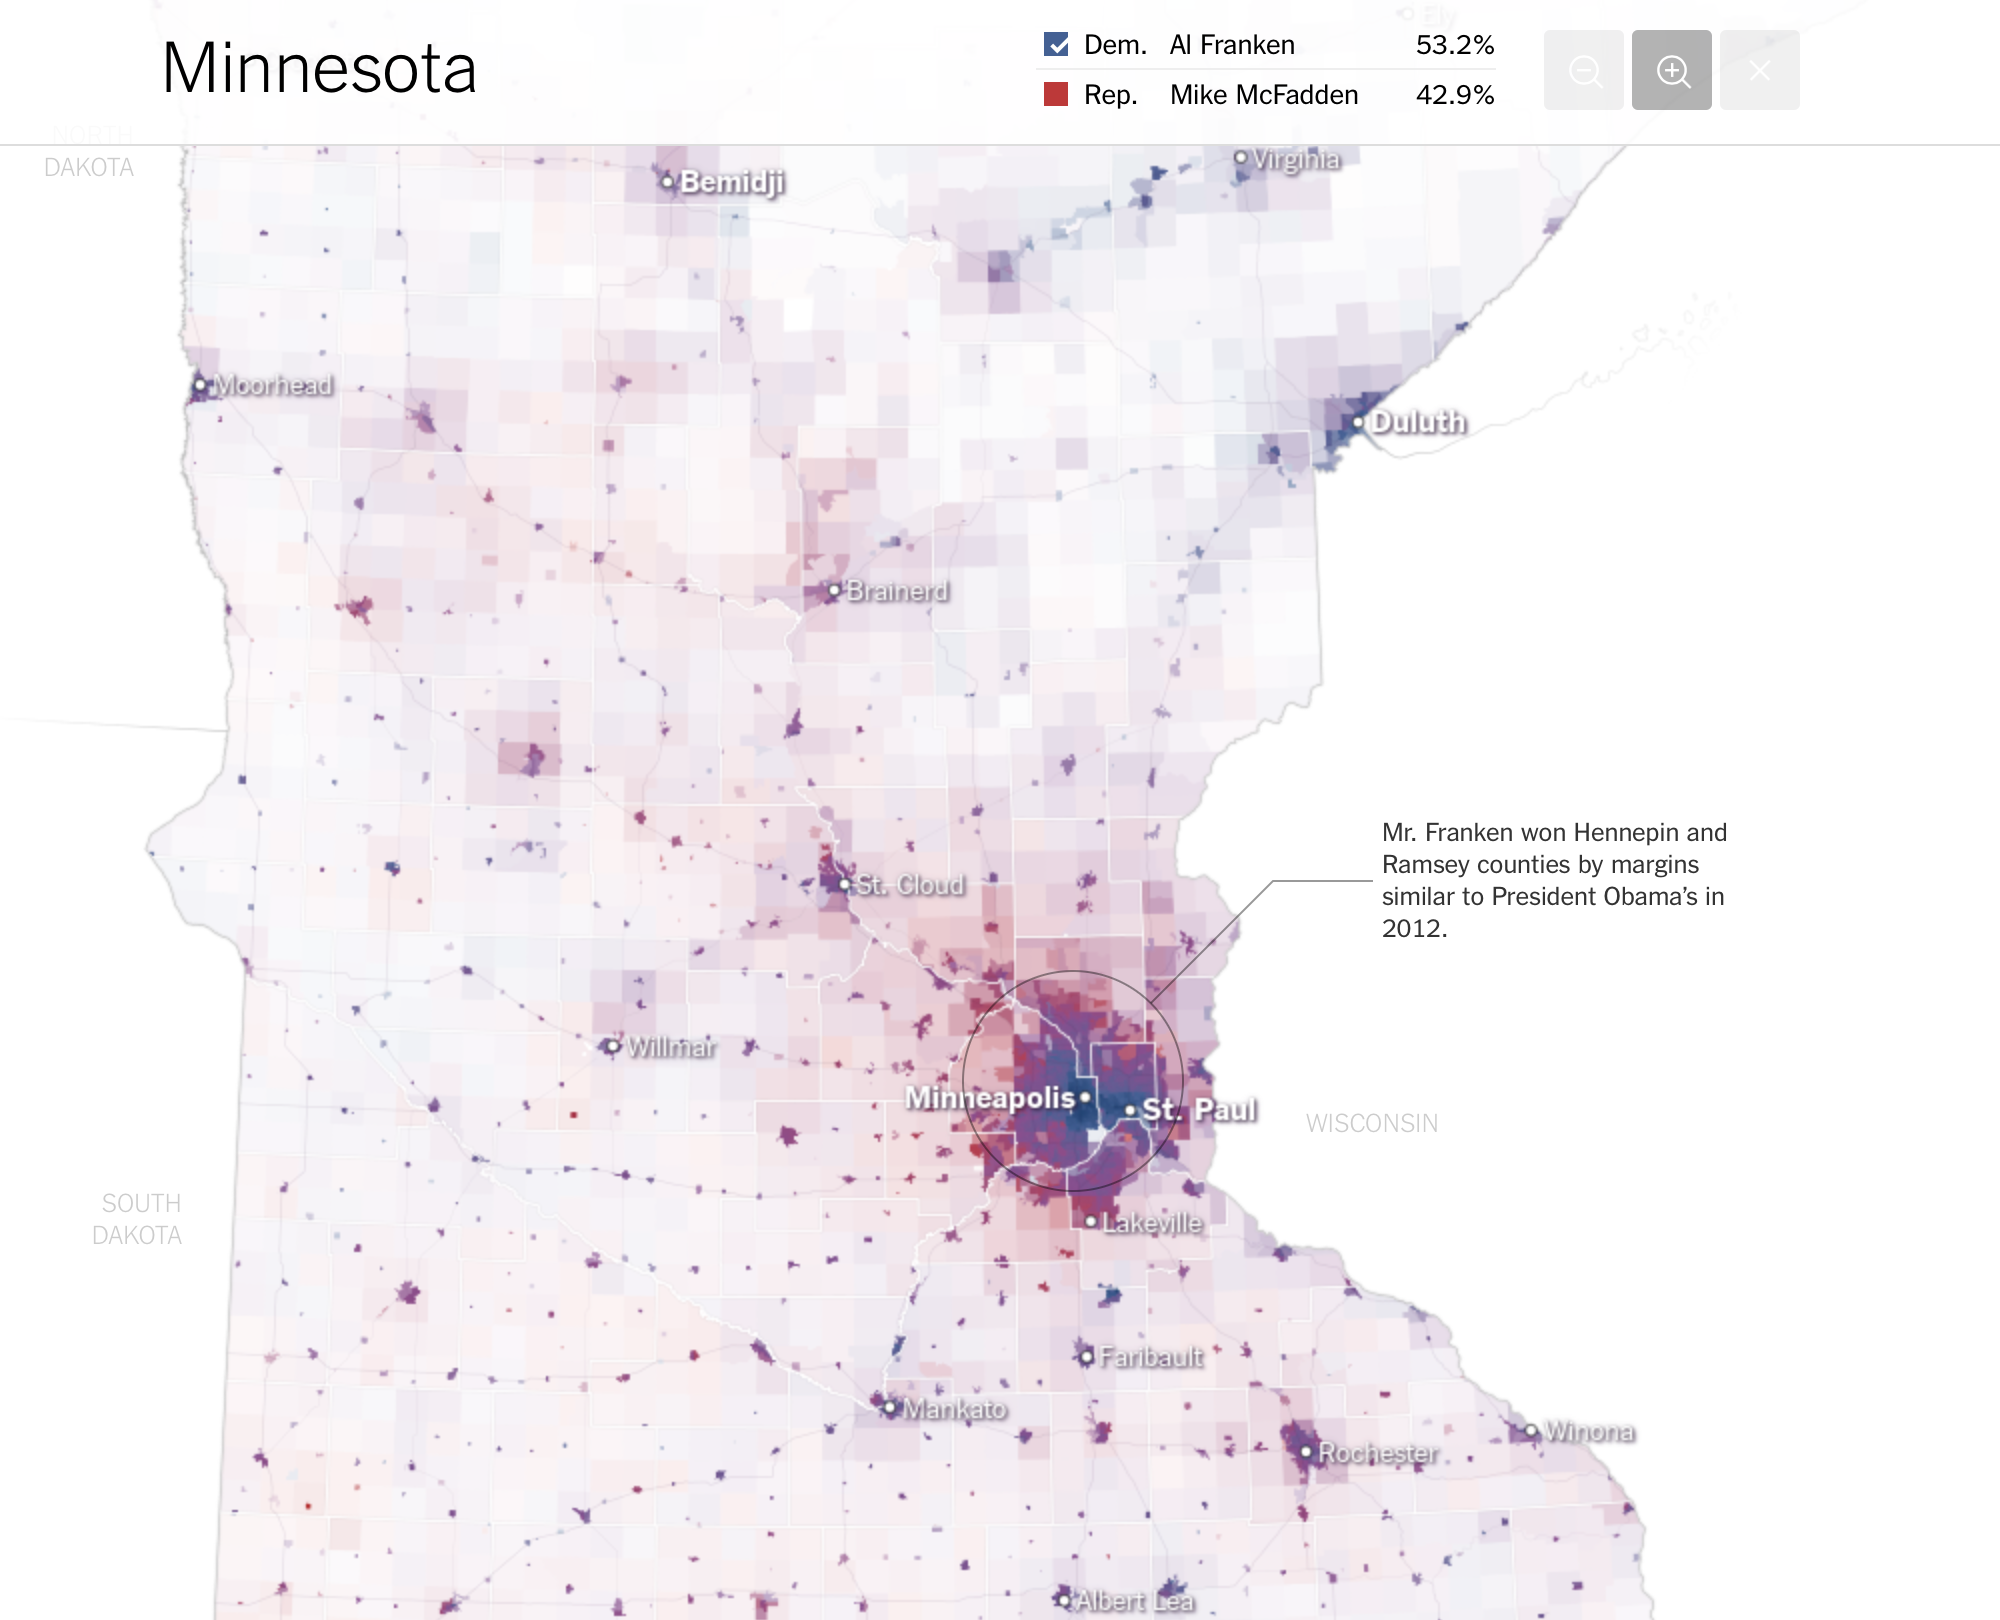 The Most Detailed Maps Youll See From The Midterm Senate - New york times electoral map